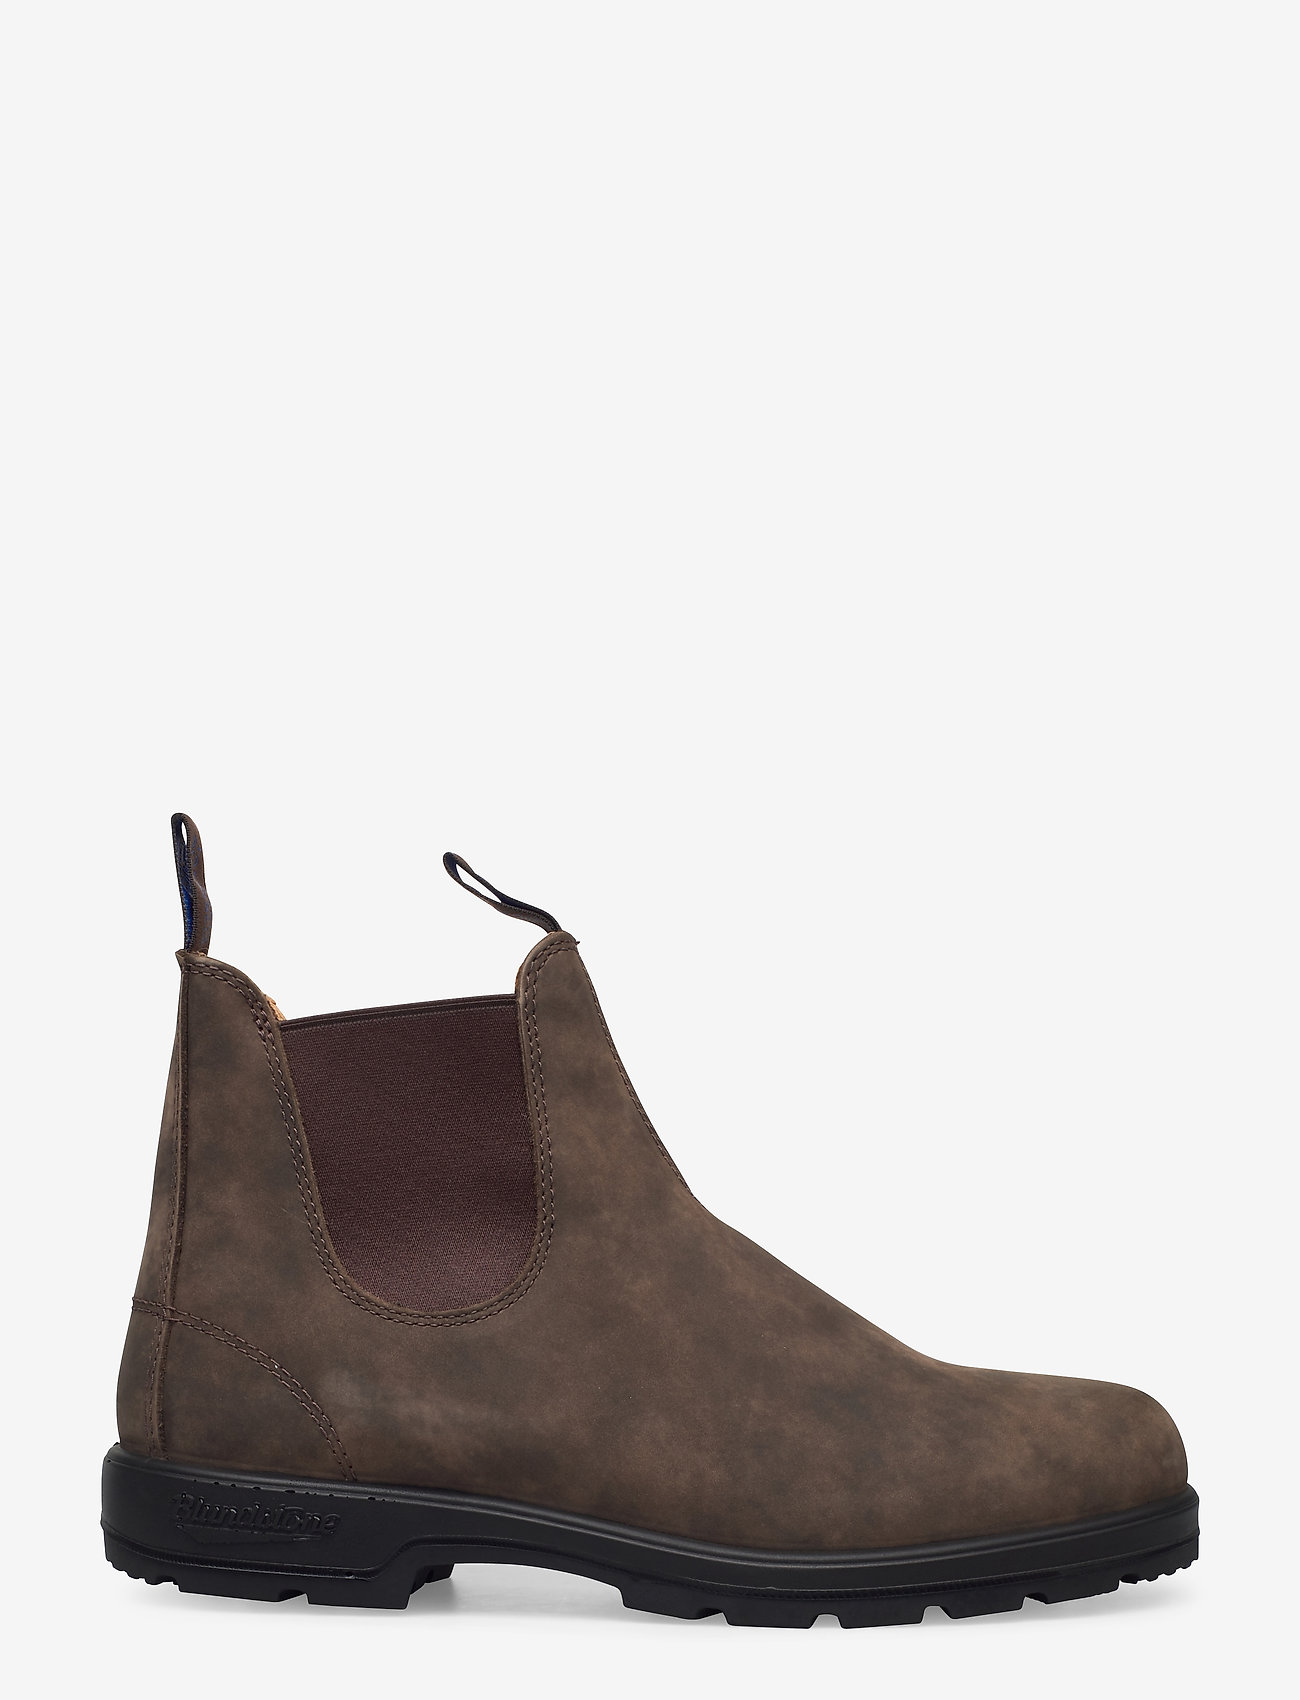 Blundstone - BL WARM & DRY RANGE - chelsea boots - rustic brown - 1